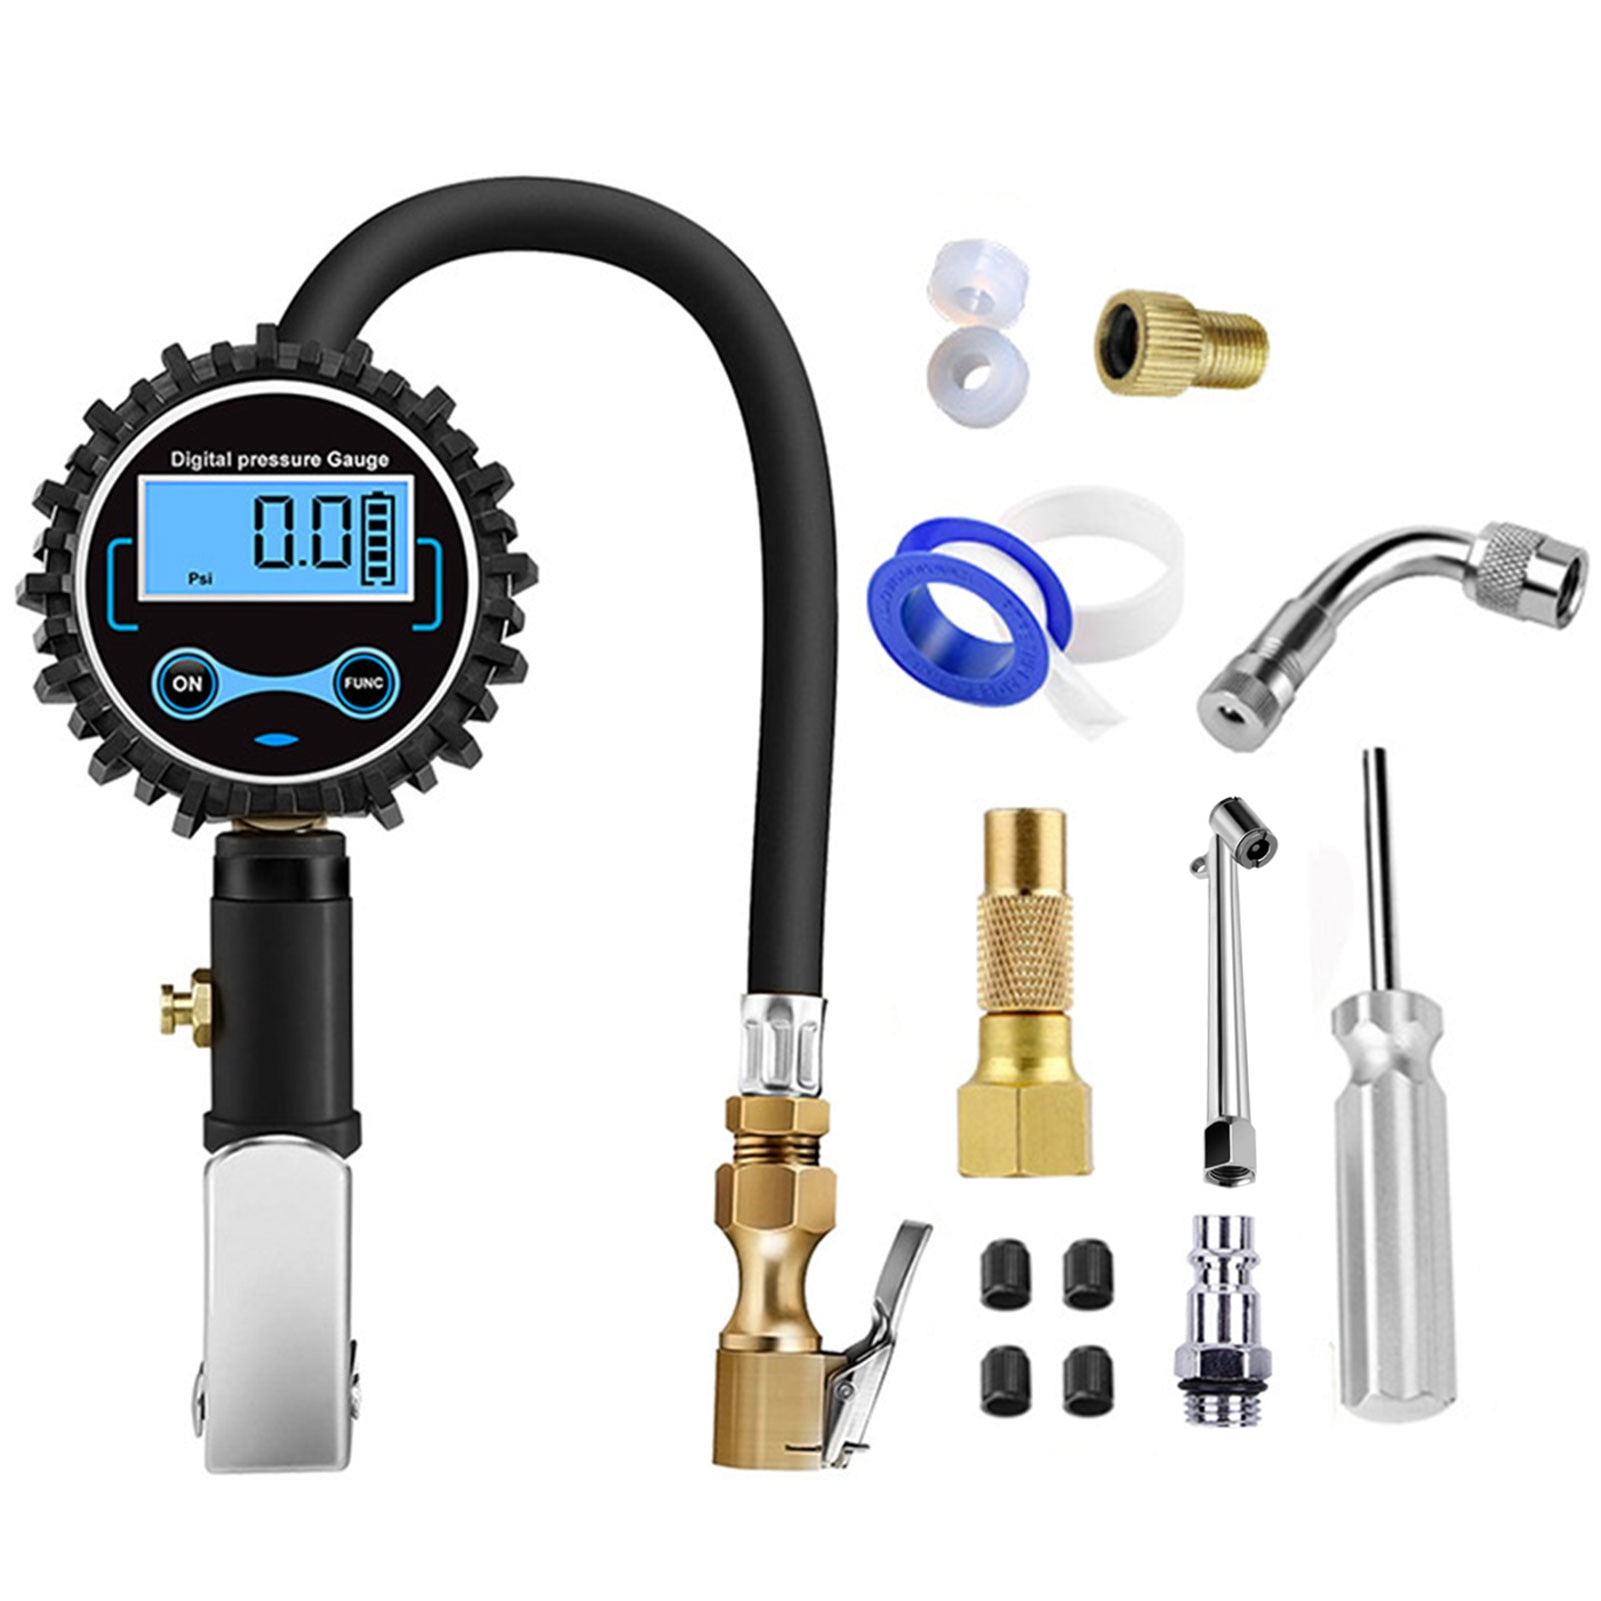 Tyre Digital Display Inflation Meter Set High Precision Digital Display Tire Inflation Gun Pressure Gauge For Motorcycles Cars